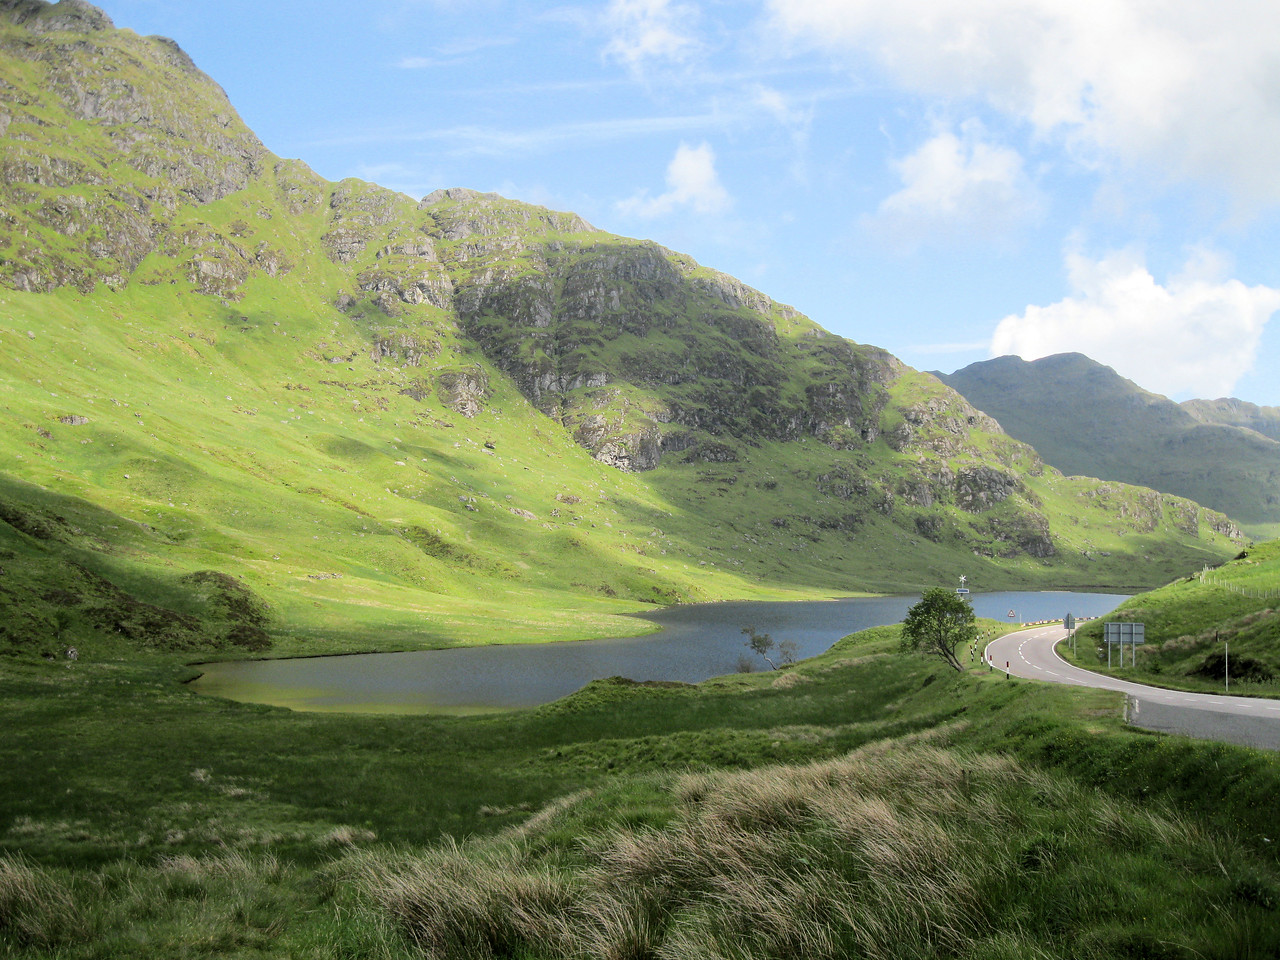 Loch Restil and Glen Kinglas from Rest and be Thankful